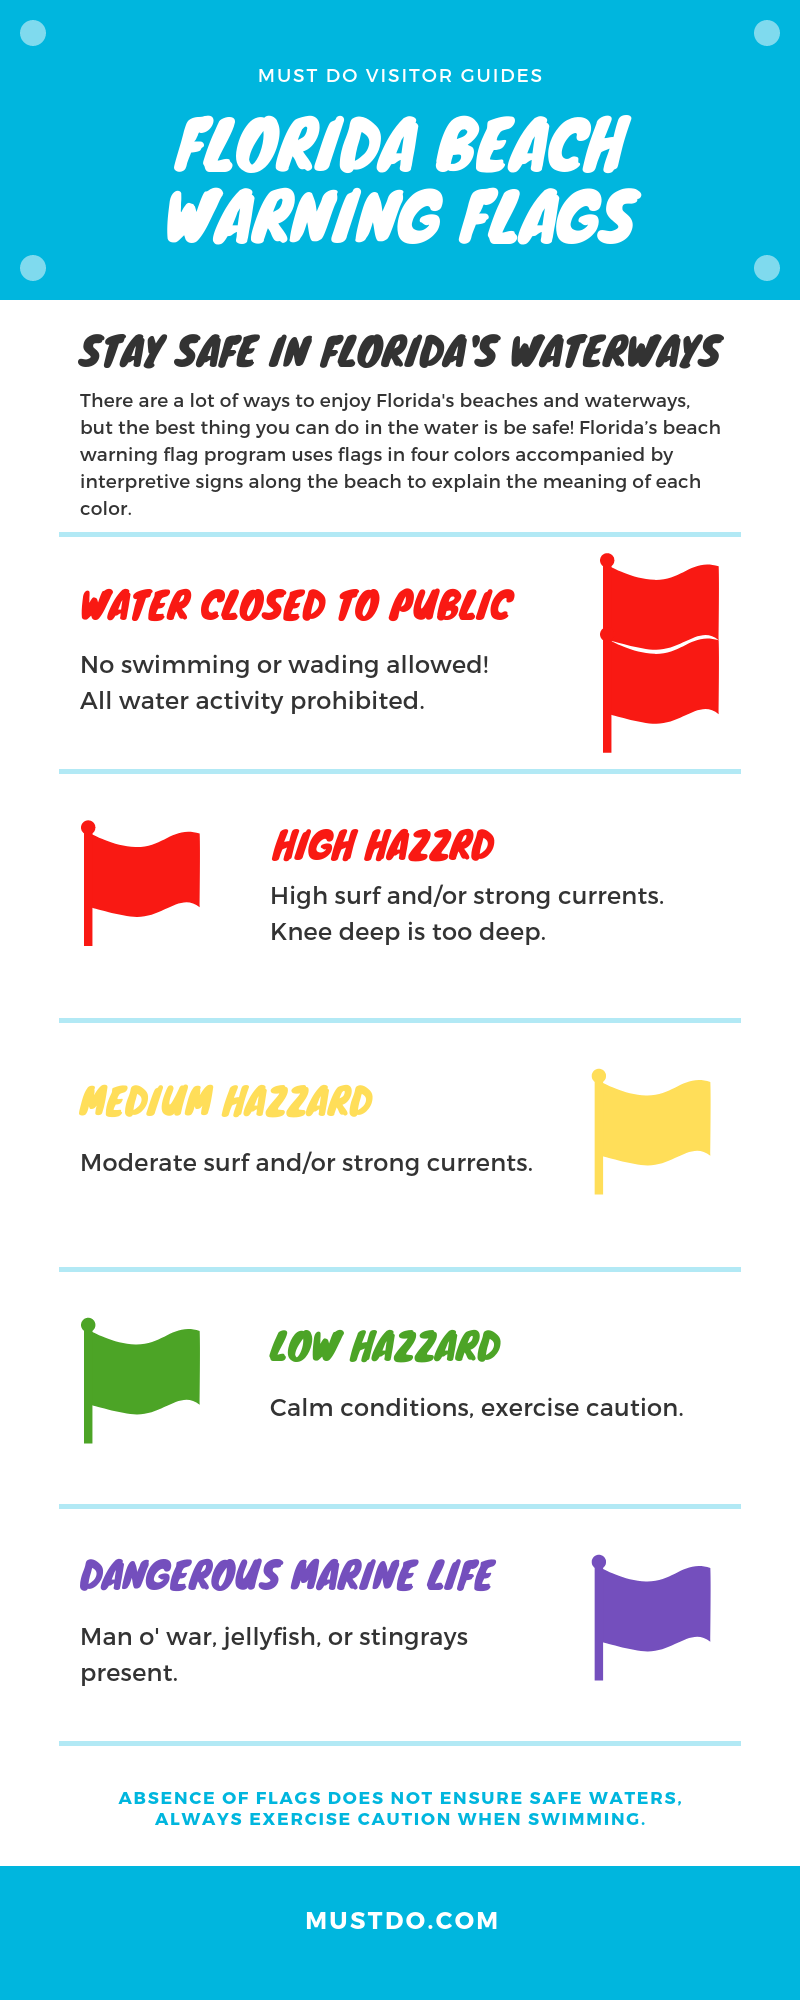 Florida Beach Warning Flags Infographic. Learn all about Florida's beach warning flags beach warning flags and what they mean. Signs and flags are posted at each beach public access point. Must Do Visitor Guides | MustDo.com